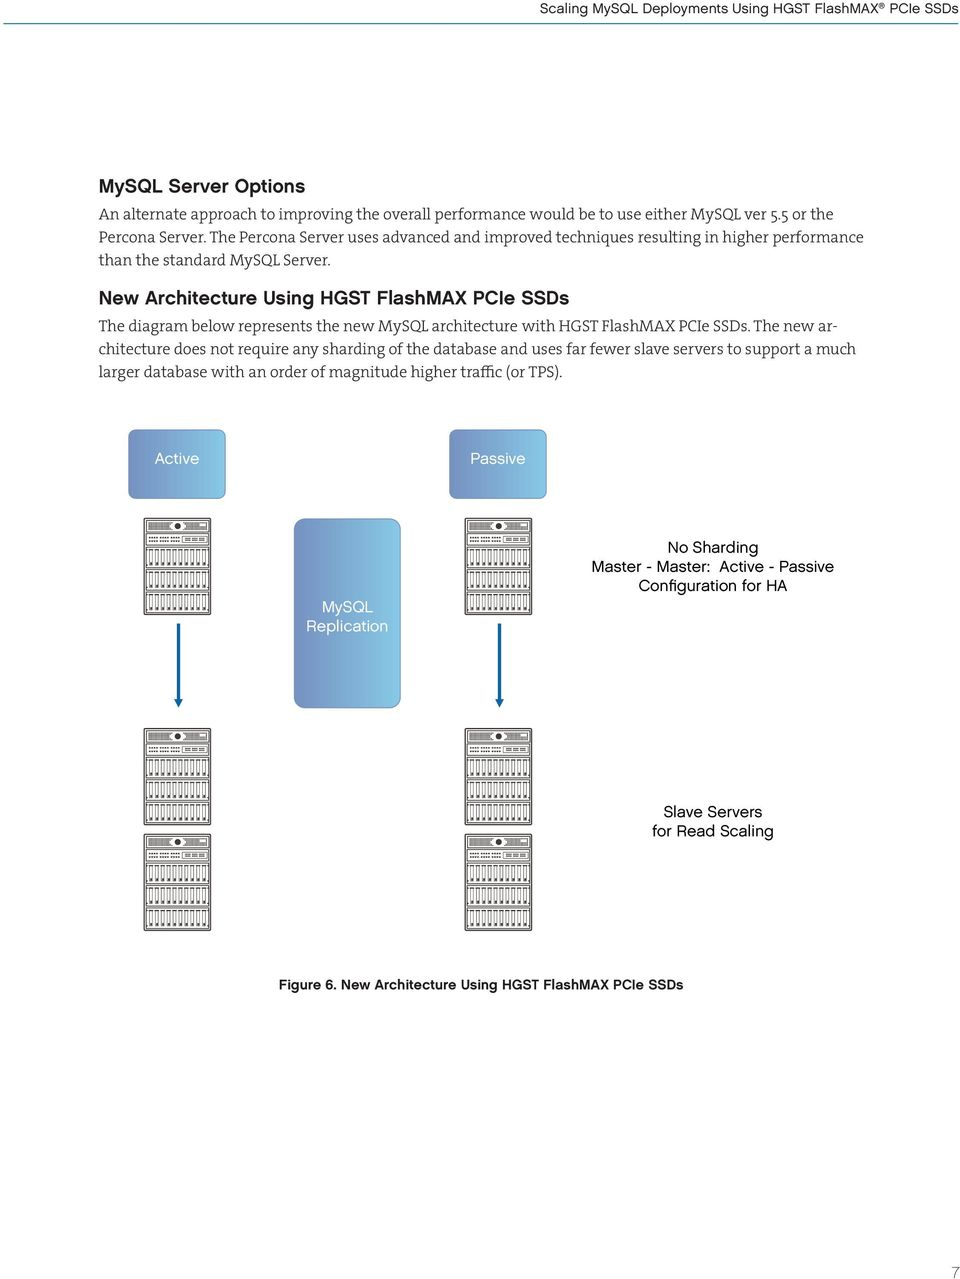 New Architecture Using HGST FlashMAX PCIe SSDs The diagram below represents the new MySQL architecture with HGST FlashMAX PCIe SSDs.